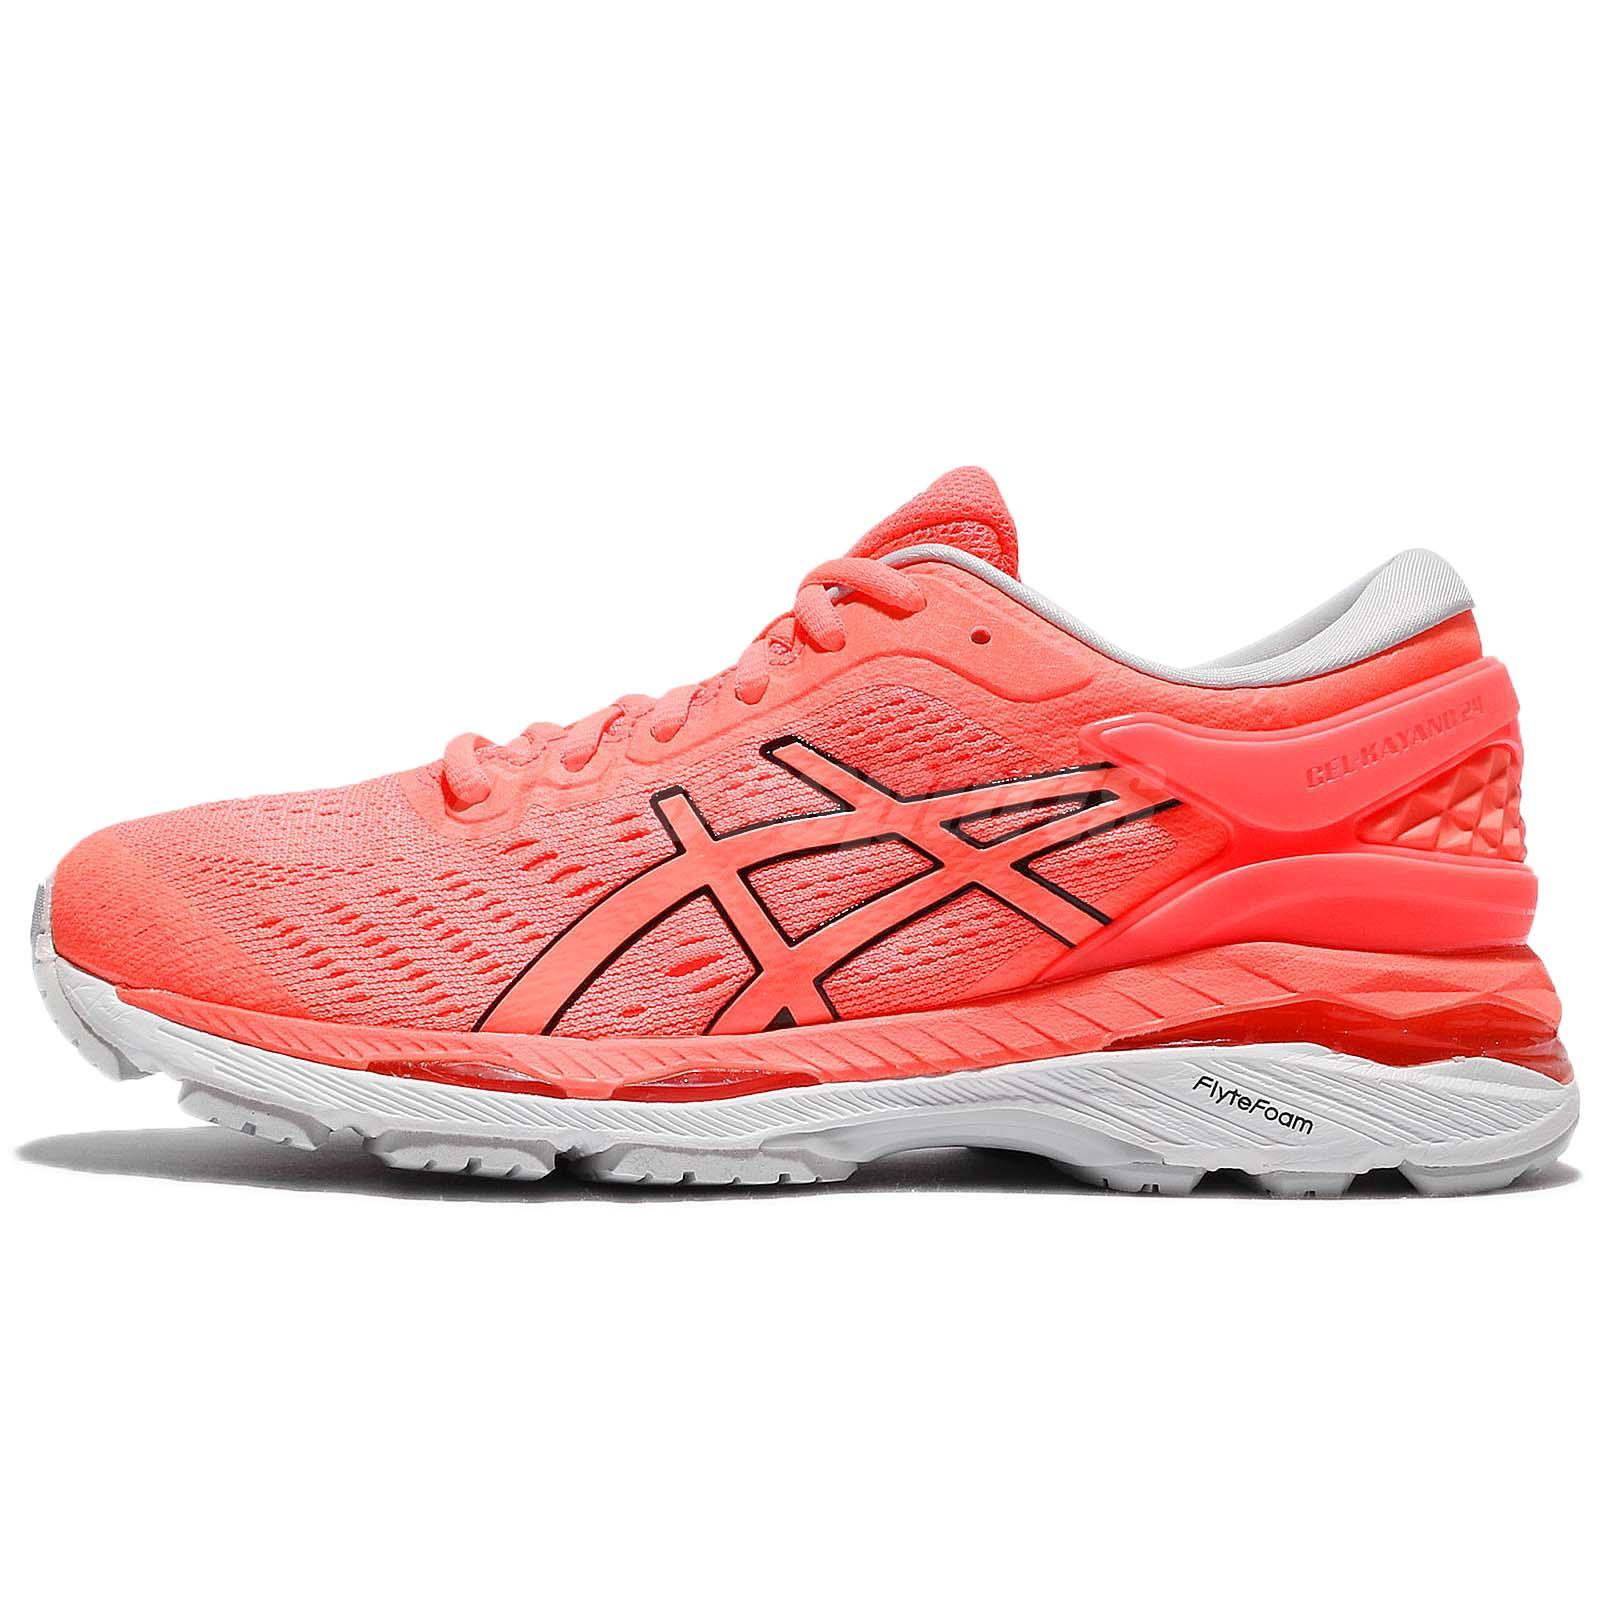 Asics Gel Kayano 24 Flash Coral White Women Running Shoes Sneakers T799N 0690